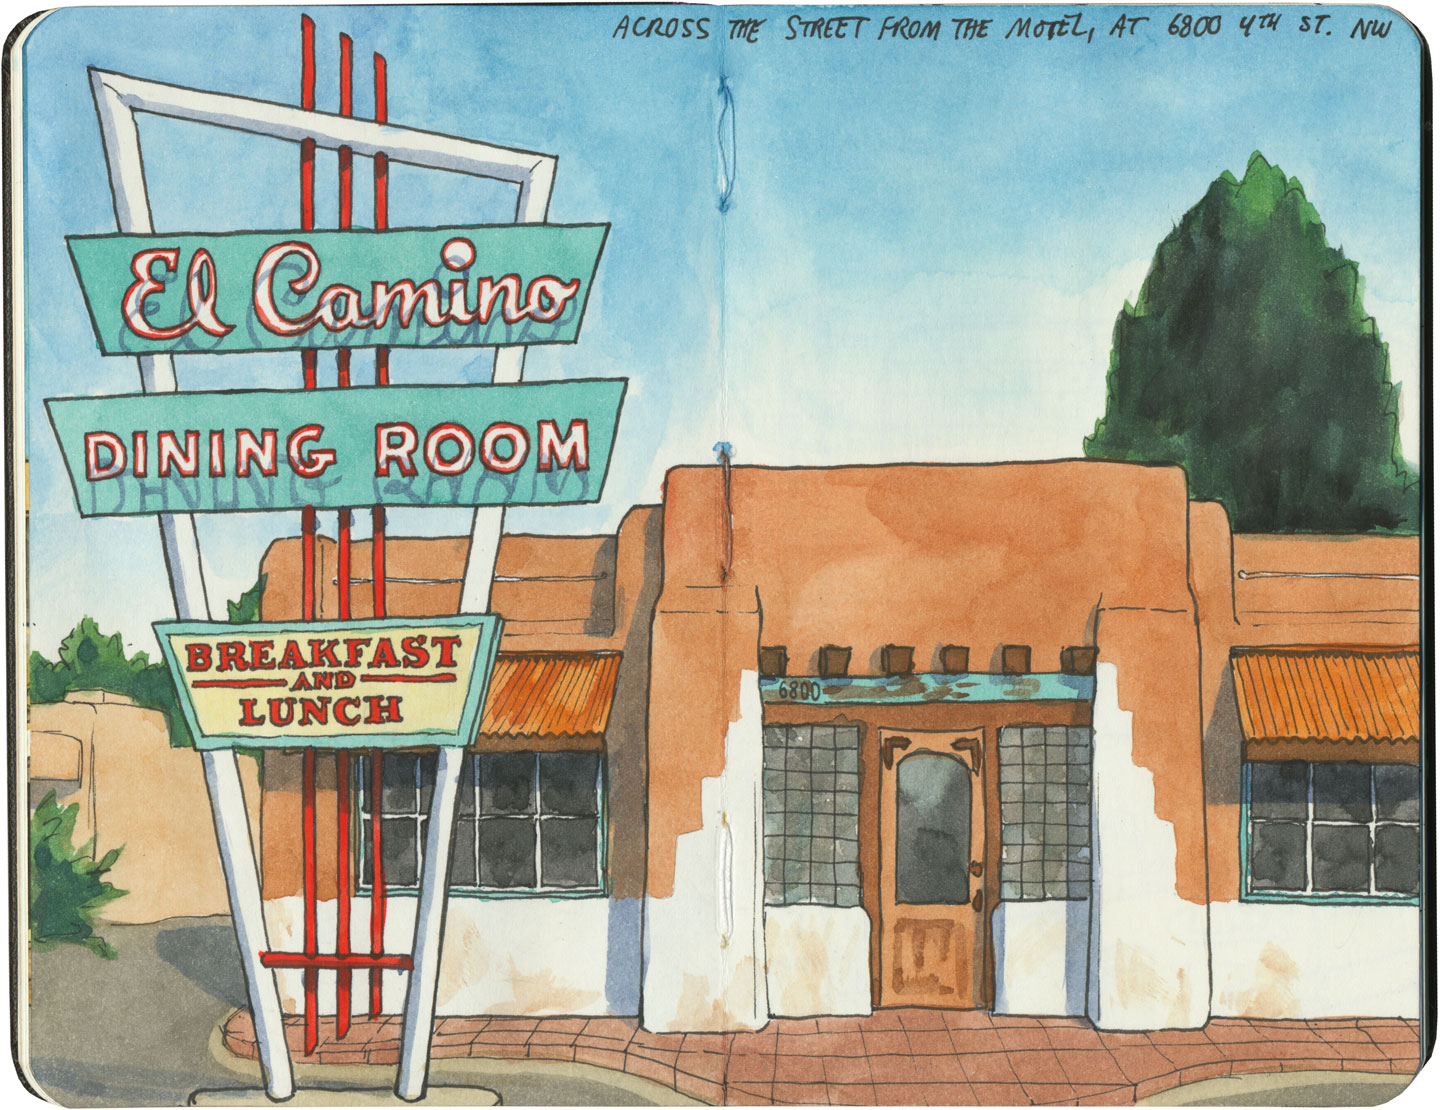 El Camino Dining Room sketch by Chandler O'Leary